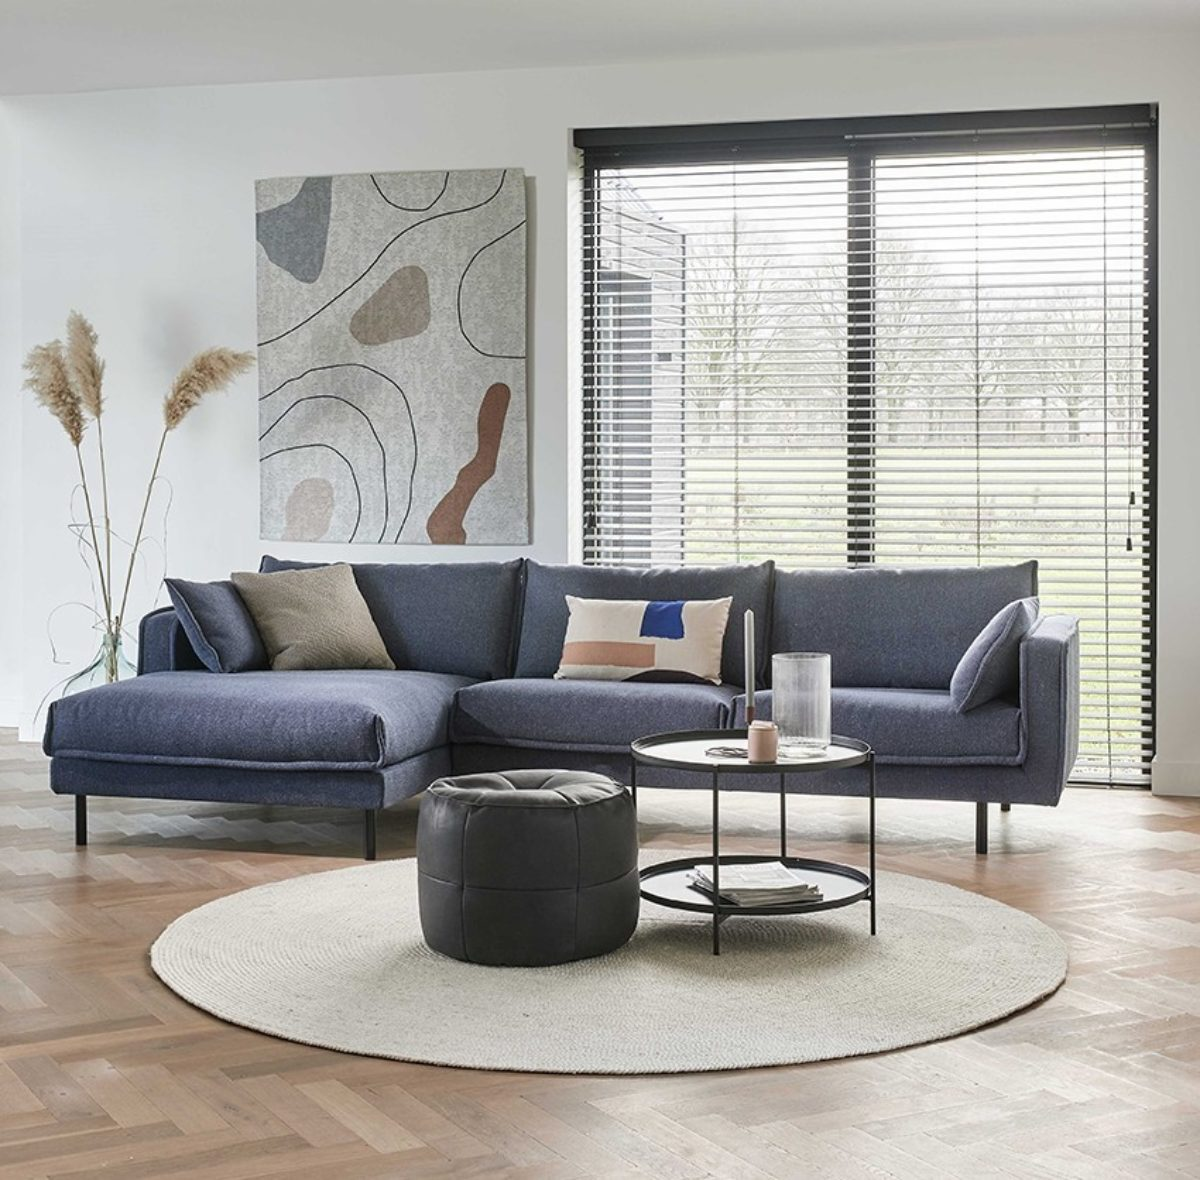 Bodilson sofa cooper 04 kok wooncenter